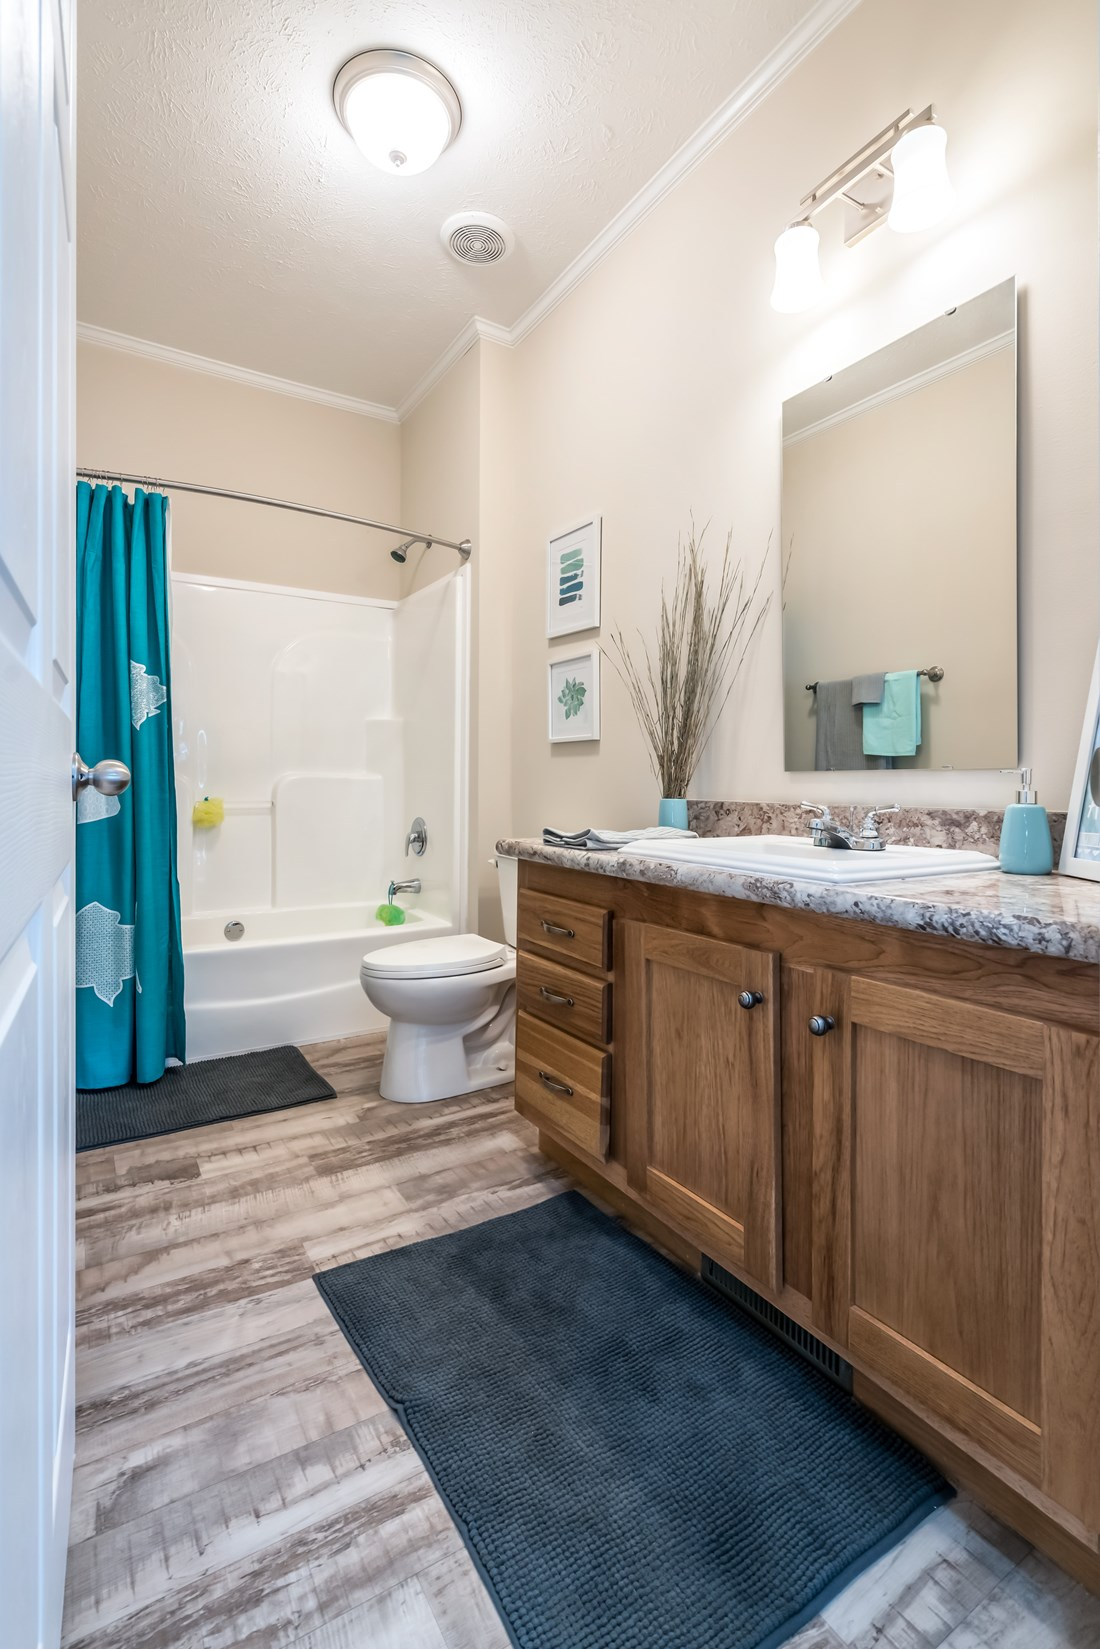 The 2914 HERITAGE Guest Bathroom. This Manufactured Mobile Home features 3 bedrooms and 2 baths.